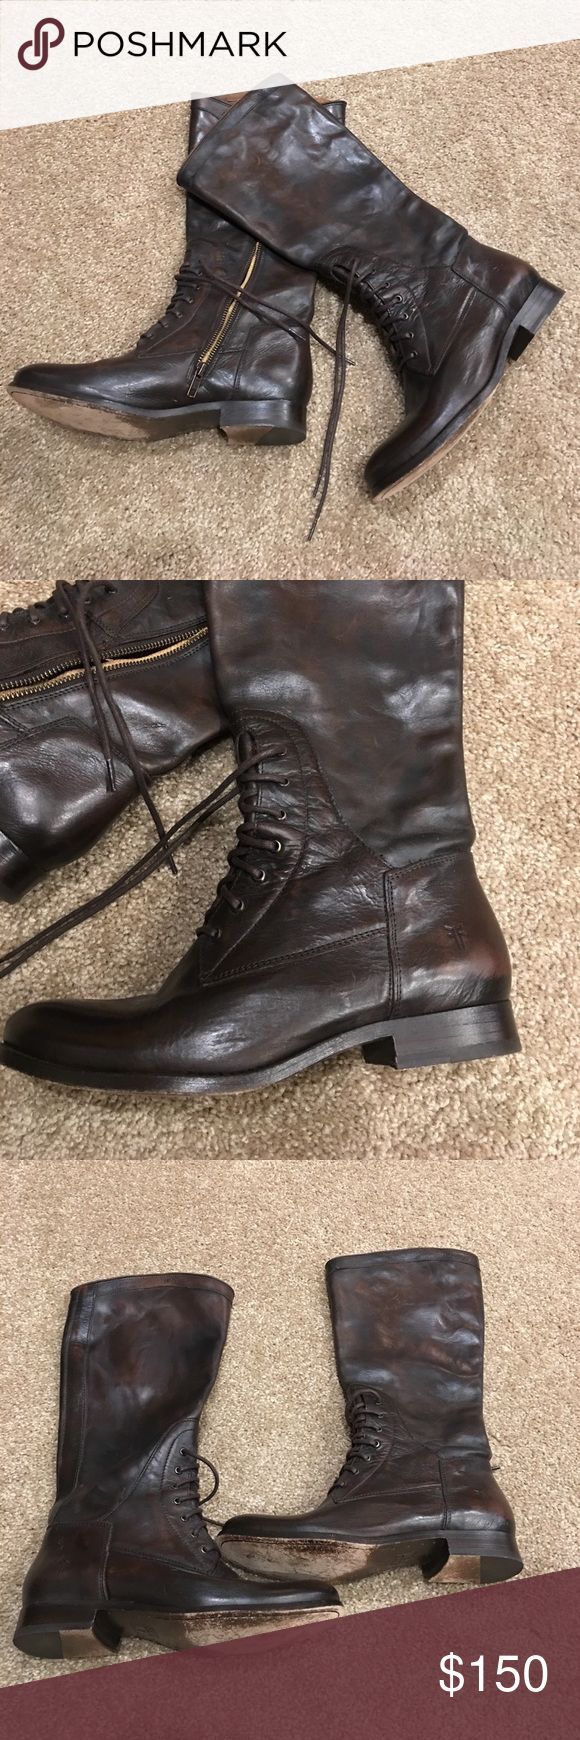 Frye Riding Boots 8 Dark brown Frye riding boots size 8. Worn a few times, but still in great condition. The bottoms are the only thing that show wear. The leather is in great condition! No scuffs or scratches! Make an offer! Frye Shoes Winter & Rain Boots